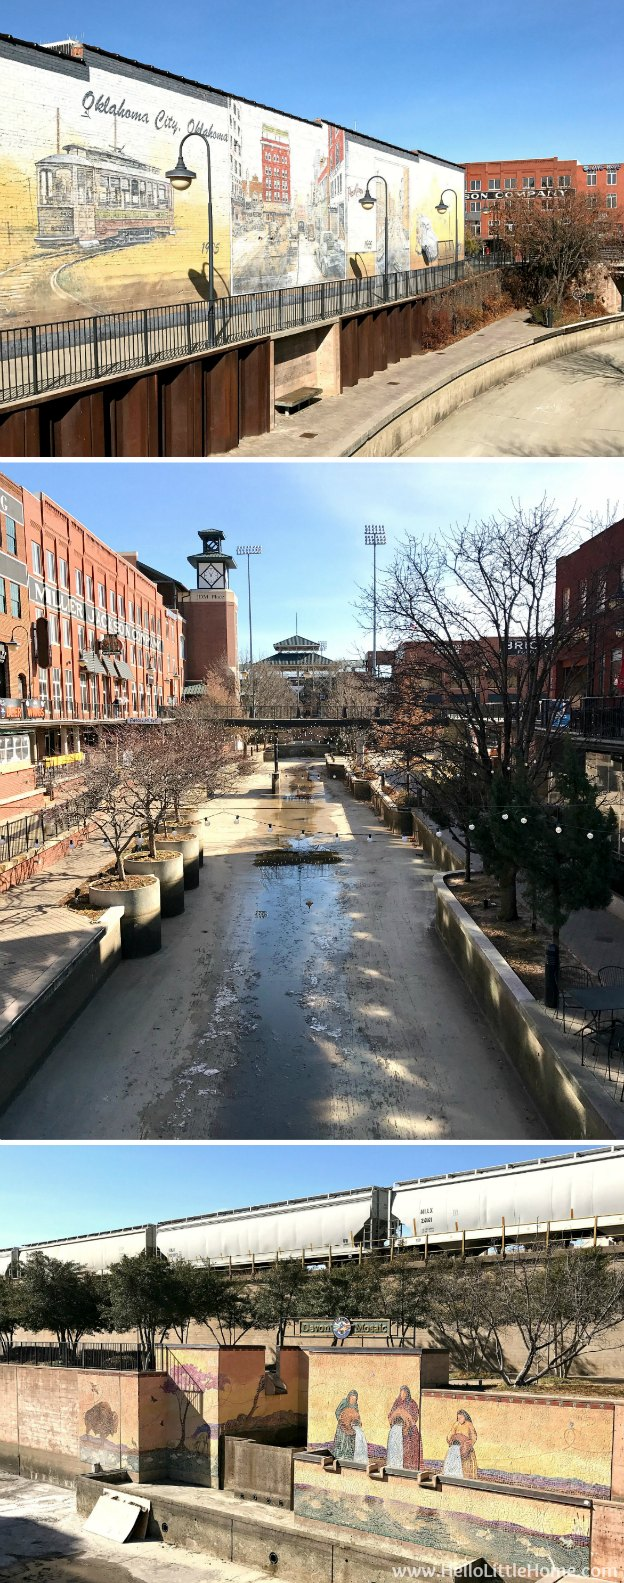 48 Hours in Oklahoma City travel guide! Take a tour of this fun, walkable city ... you won't believe all the things to do in Oklahoma City! Bricktown Canal | Hello Little Home